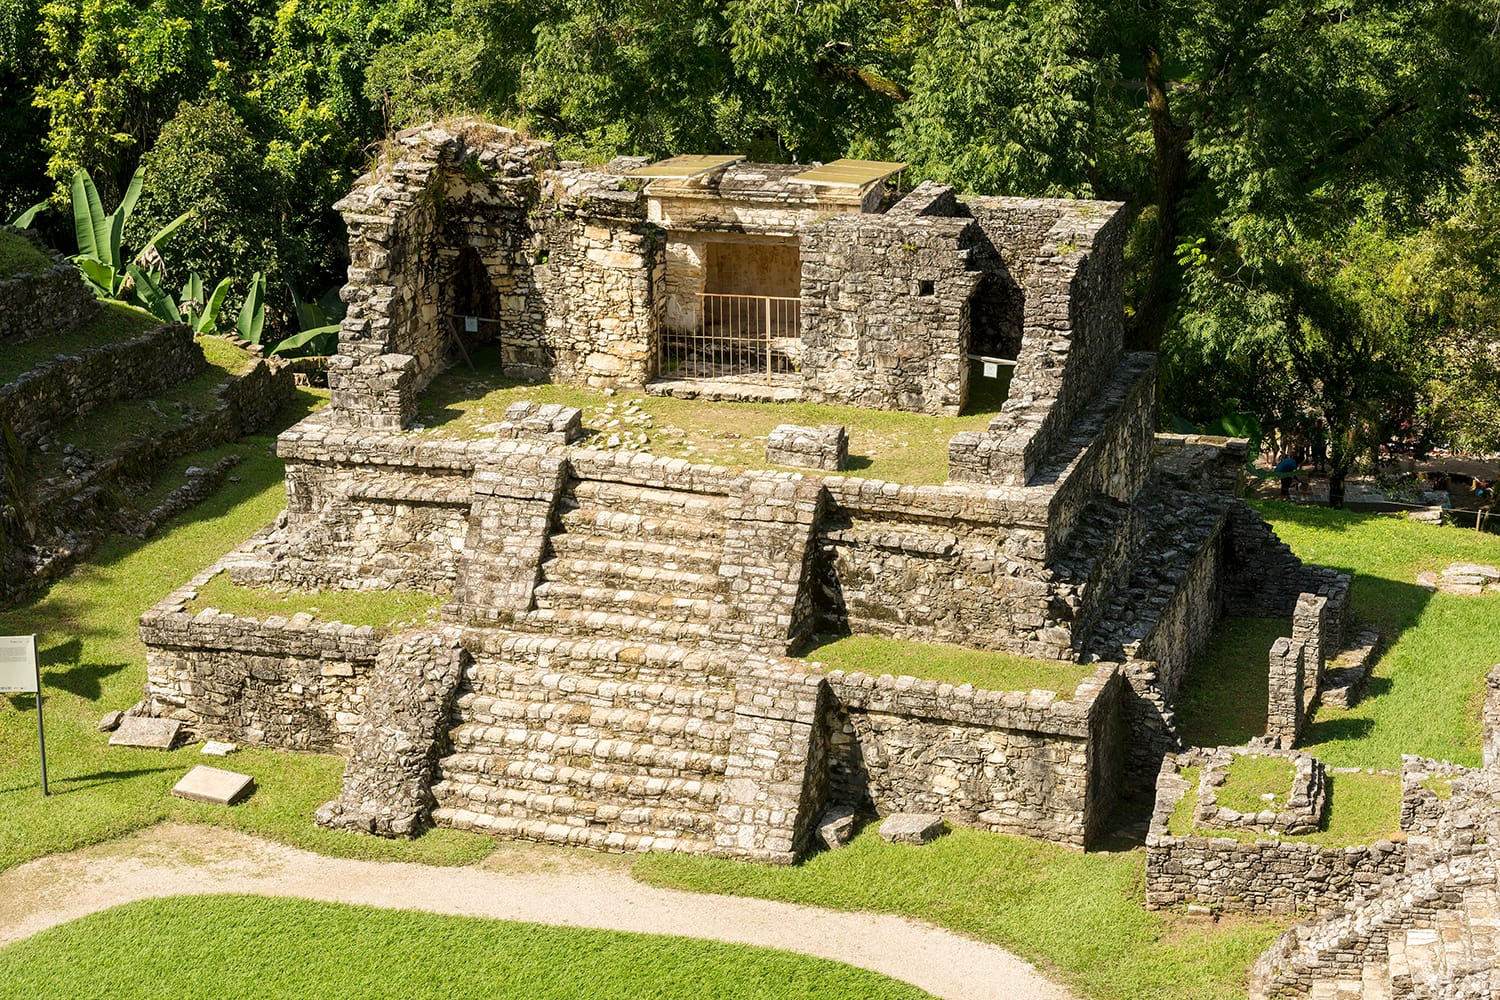 Ancient Mayan structures at the heritage site in Palenque Mexico